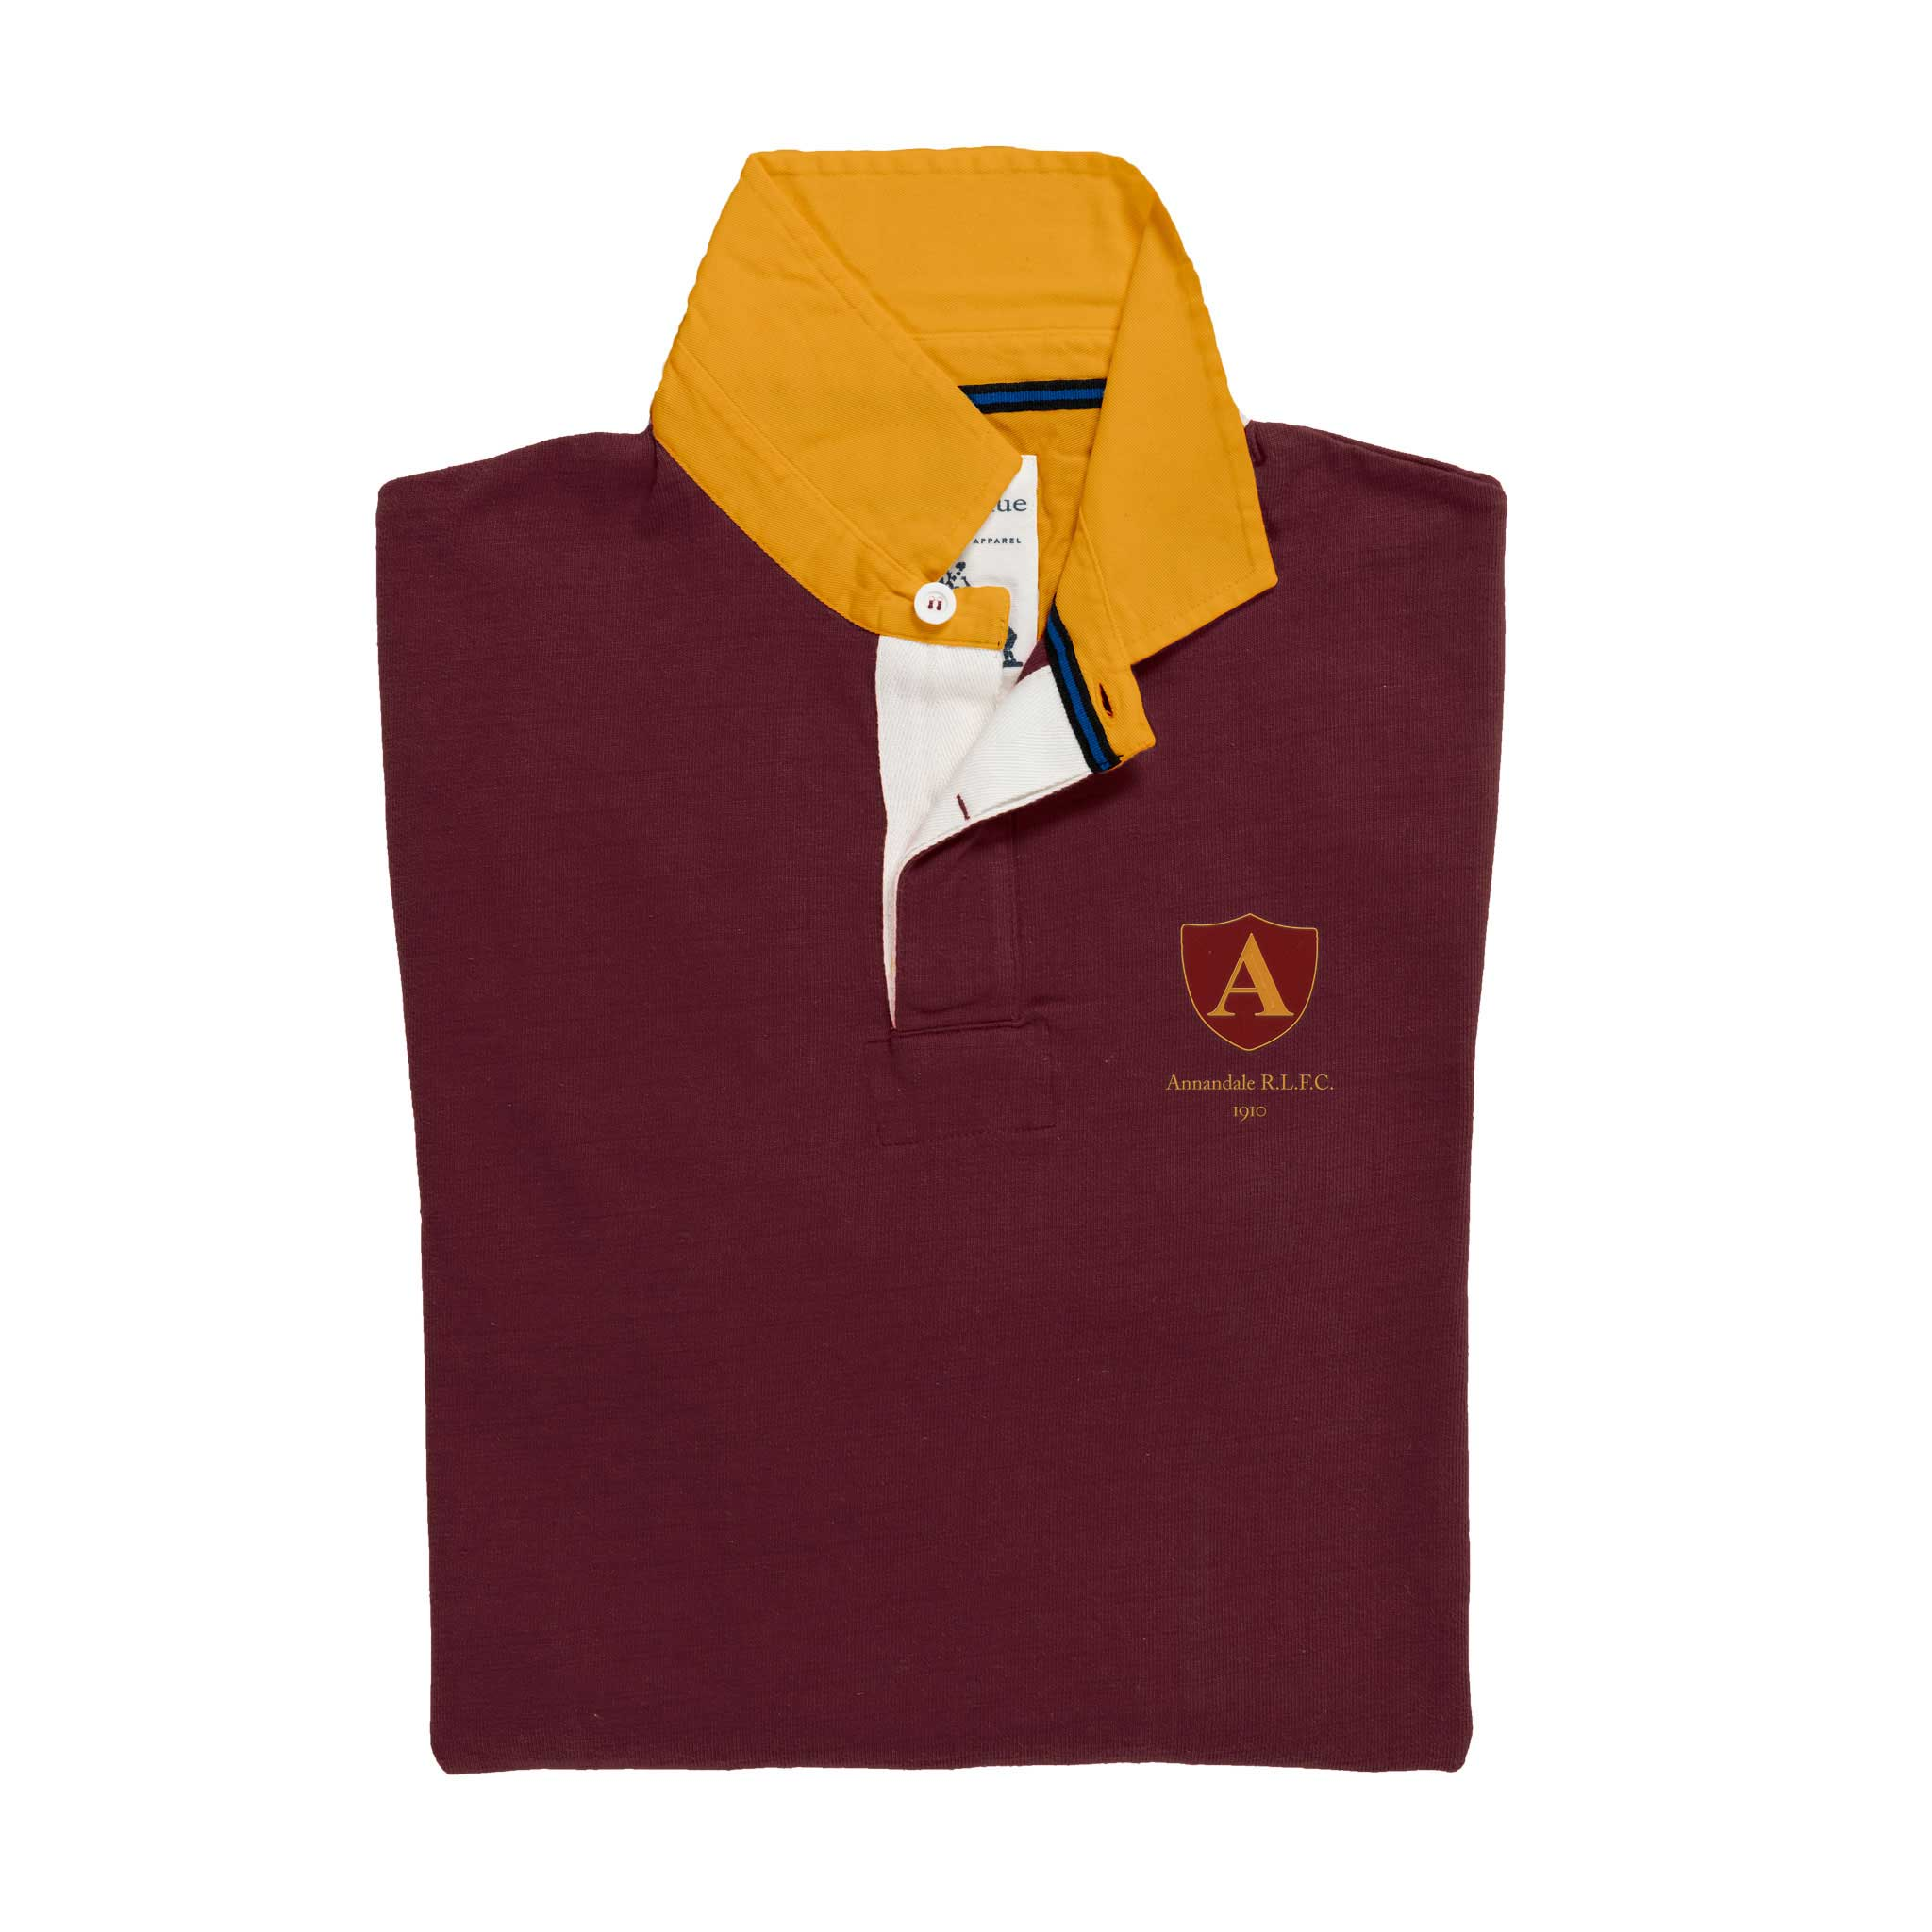 Annandale 1910 Rugby Shirt_Folded